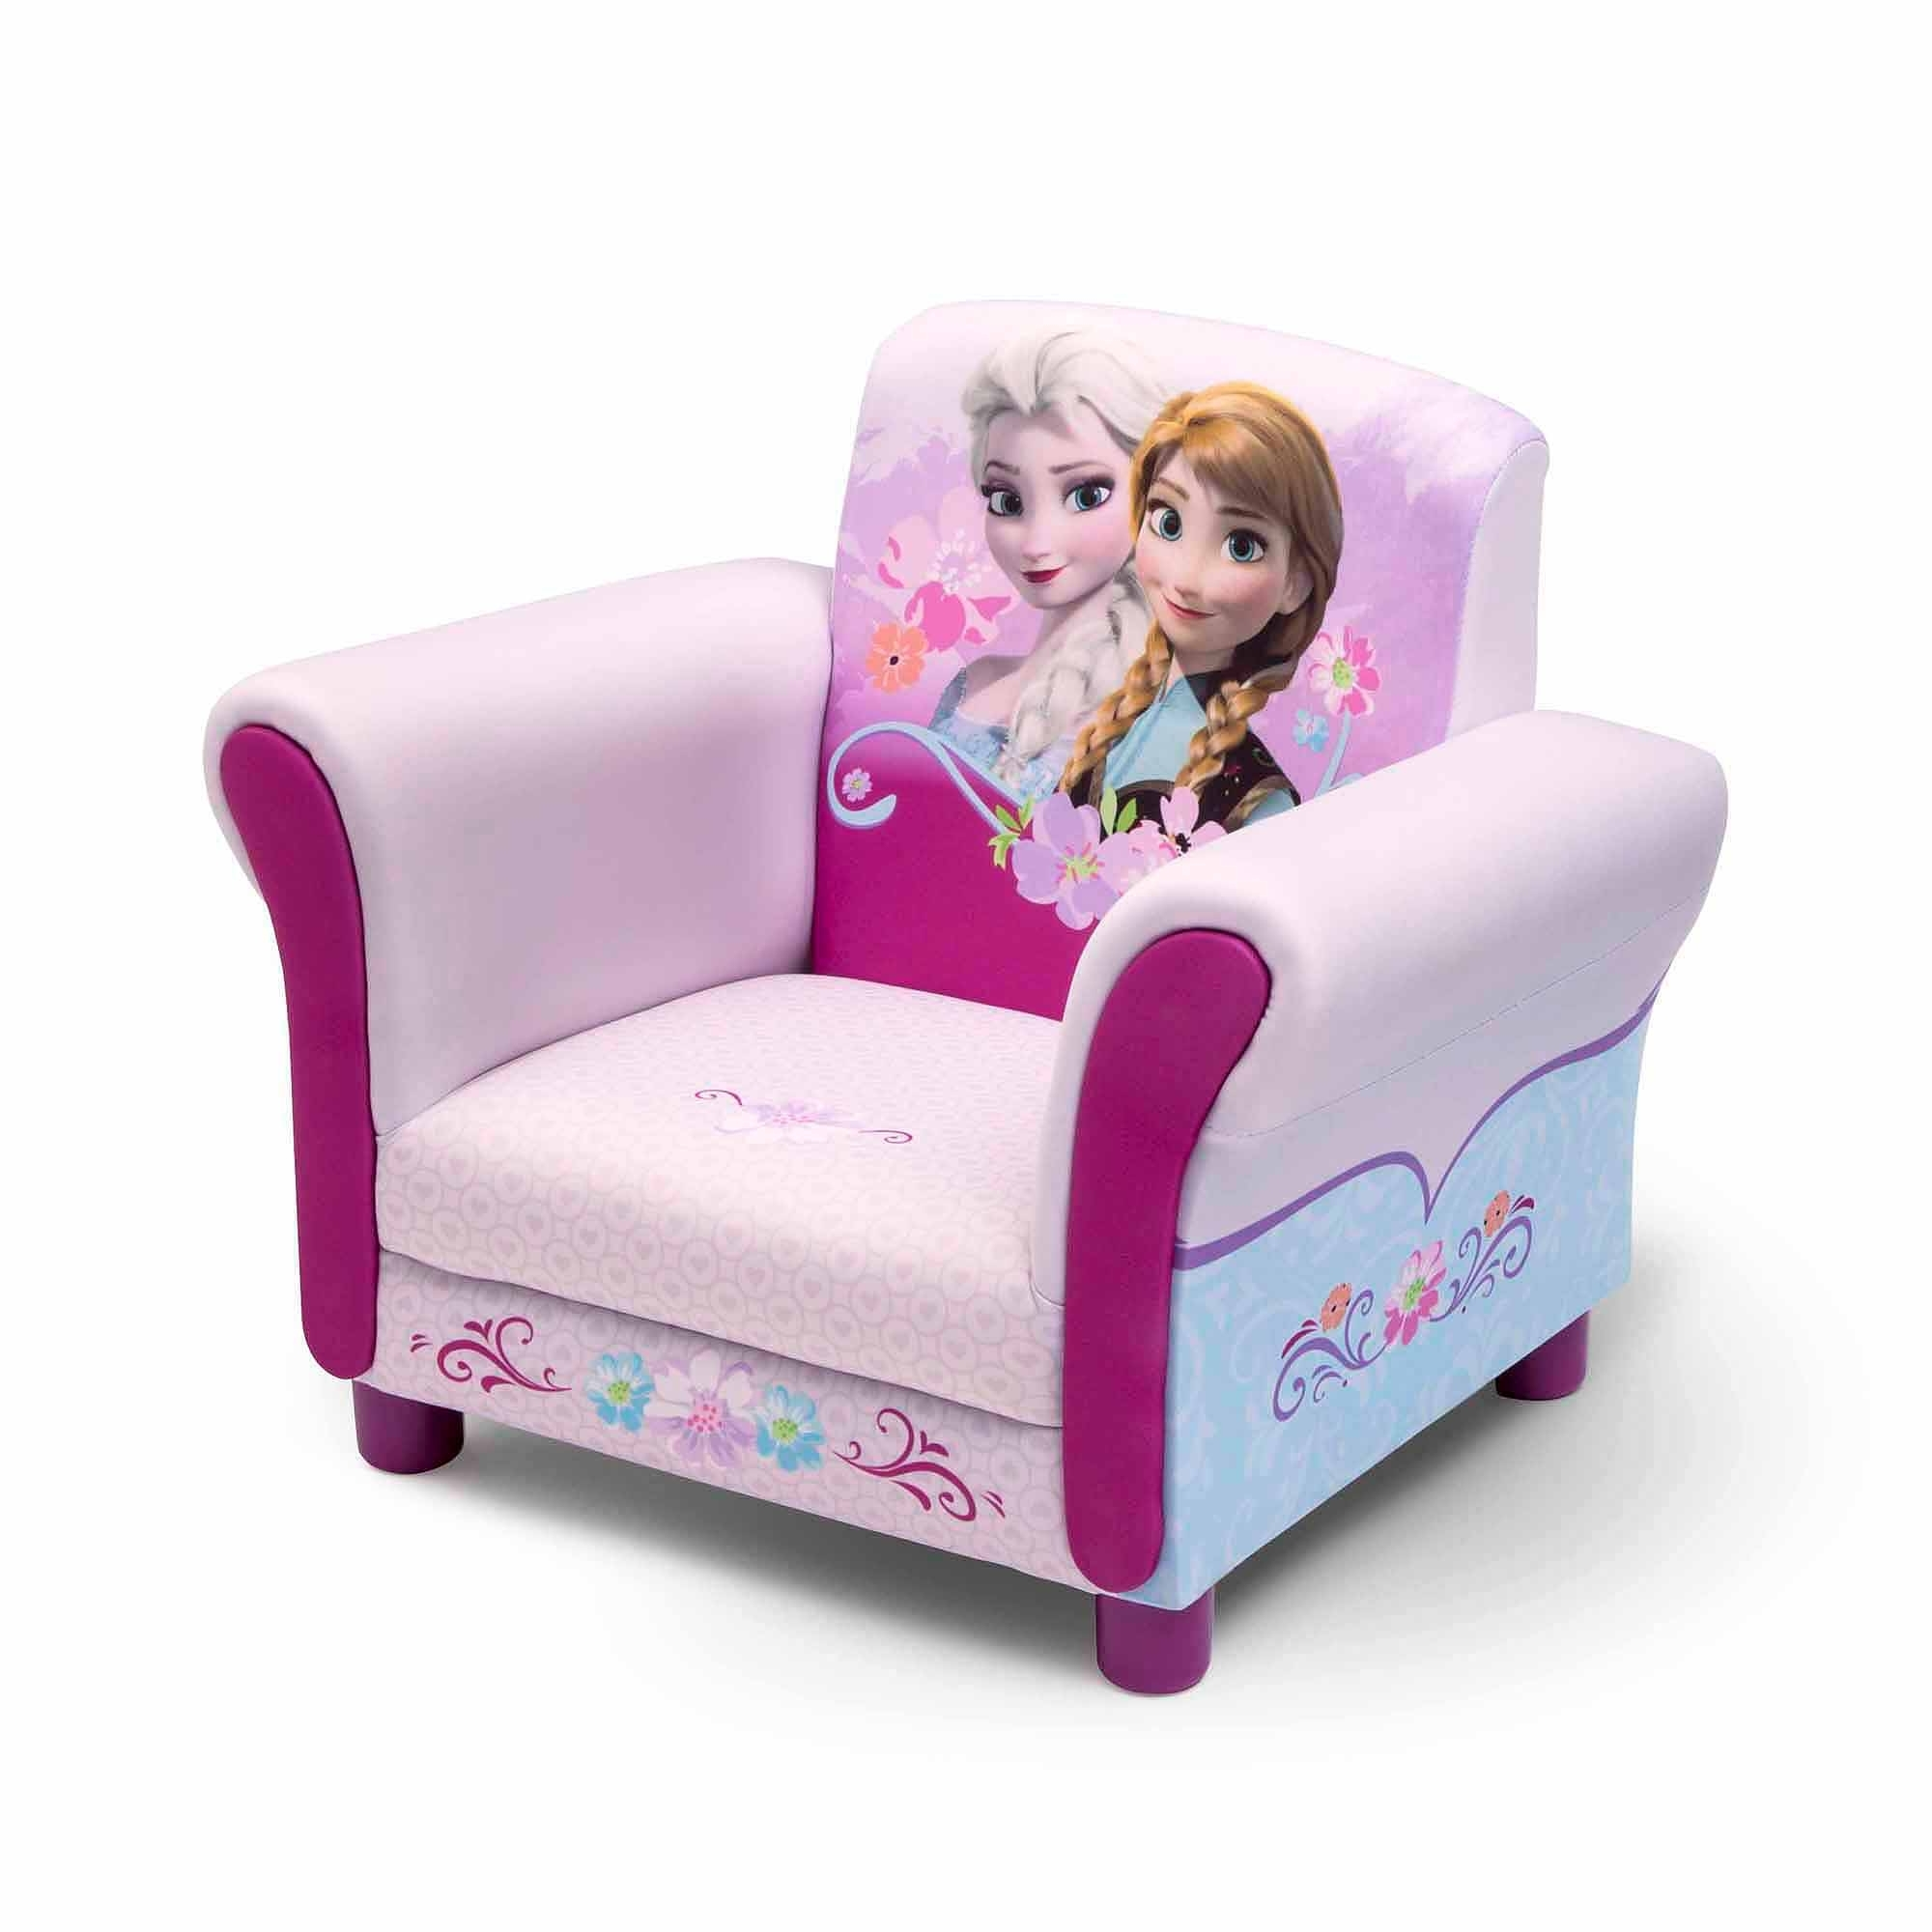 Most Popular Disney Sofa Chairs Pertaining To Disney Frozen Upholstered Chair – Walmart (View 10 of 15)